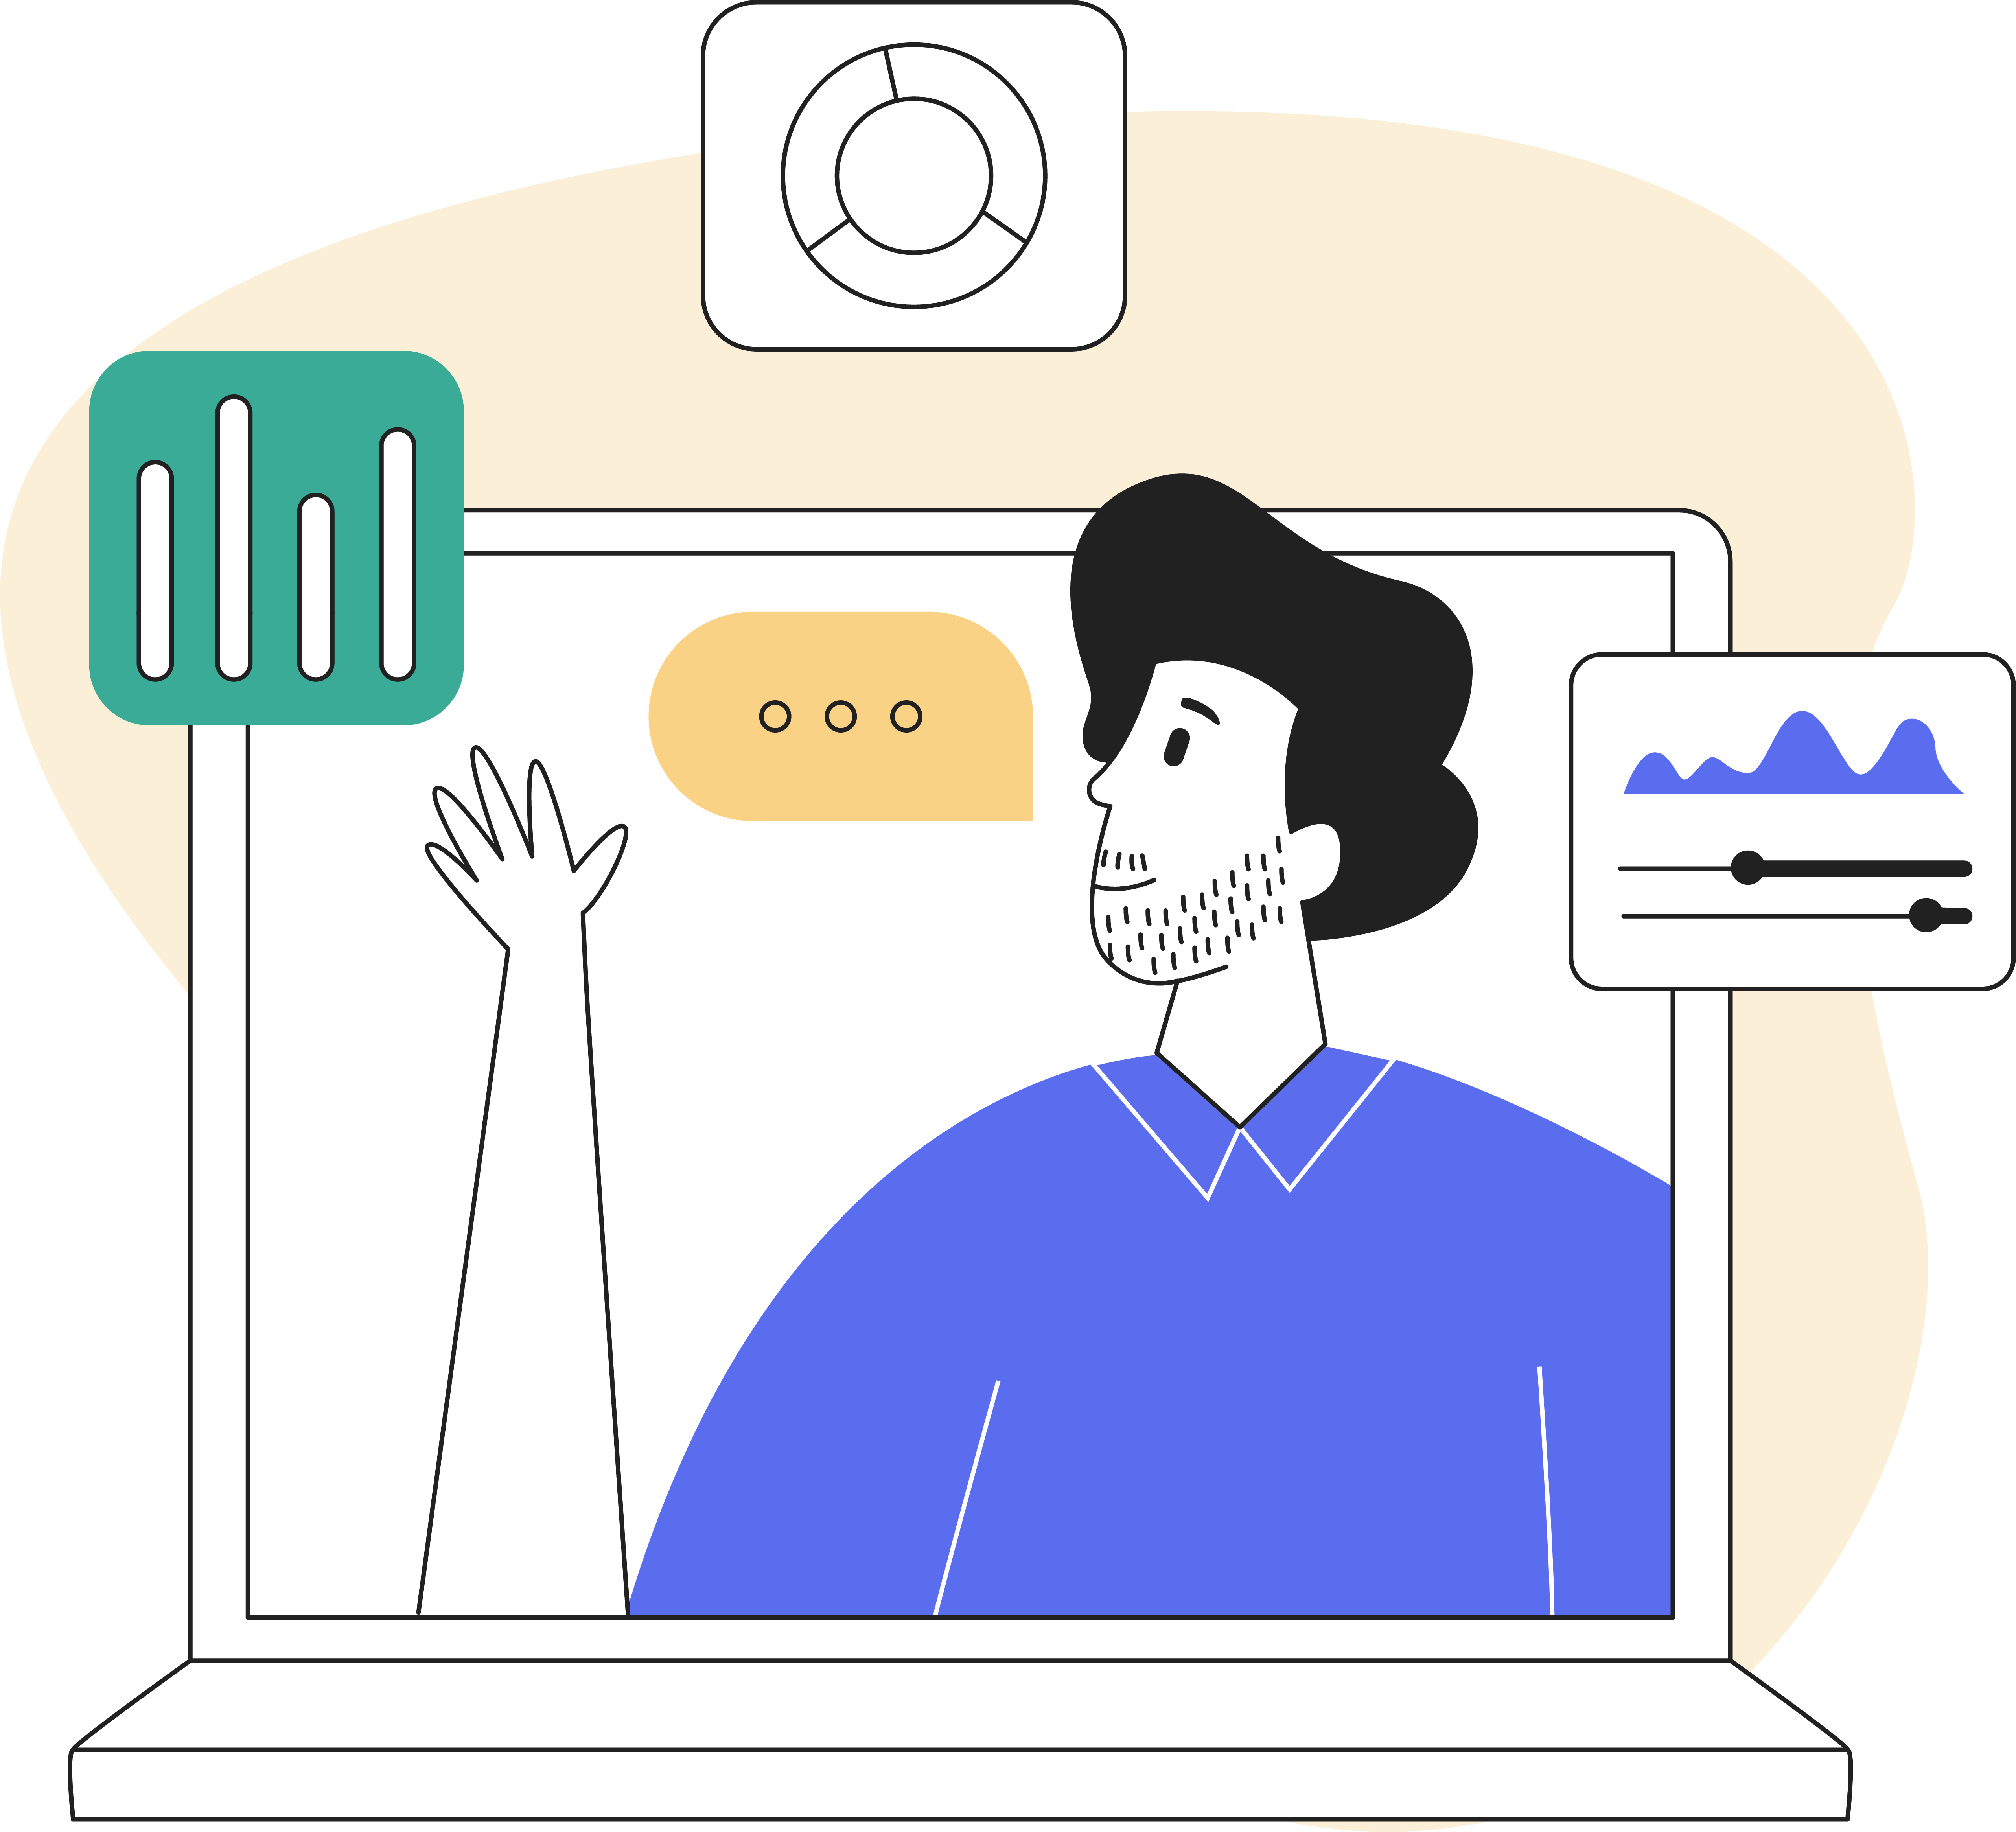 Strategy foundations: how to sharpen your positioning and messaging - Image of a man exploring the wonder of analytics because he has strengthened his position and messaging